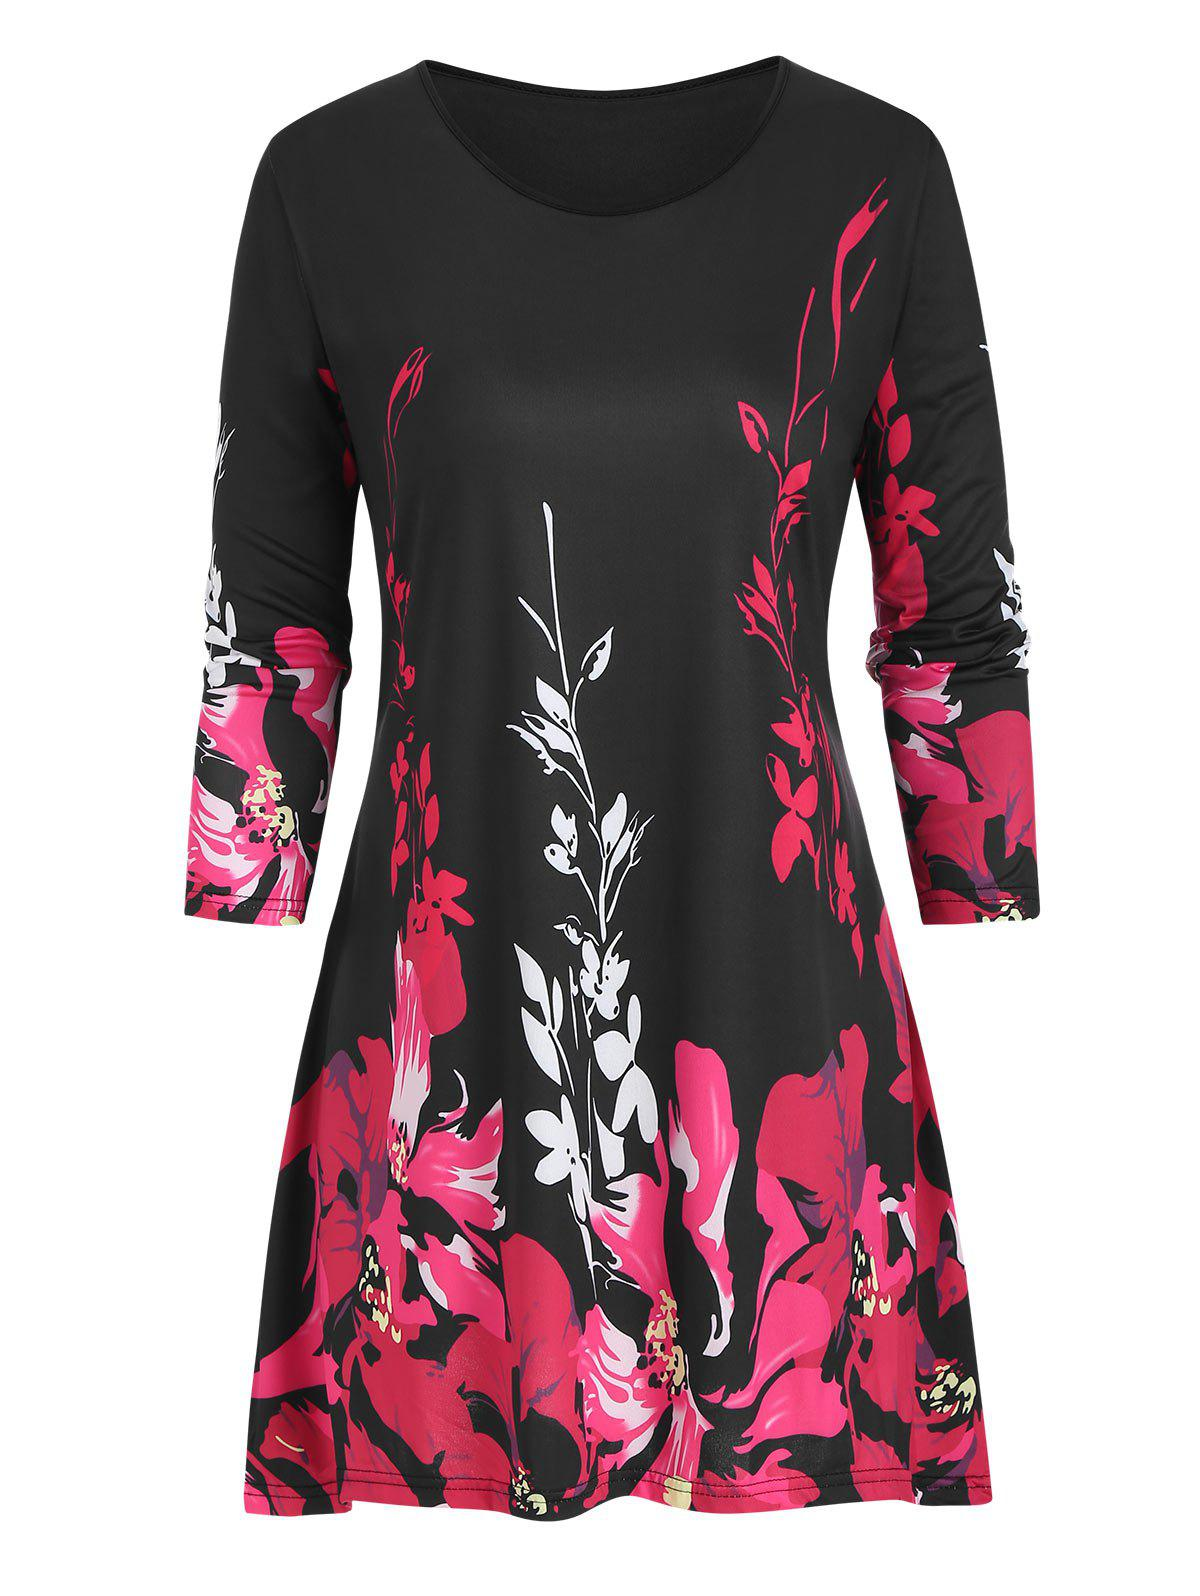 Floral Plus Size Three Quarter Sleeve Tunic Top - RED 5X